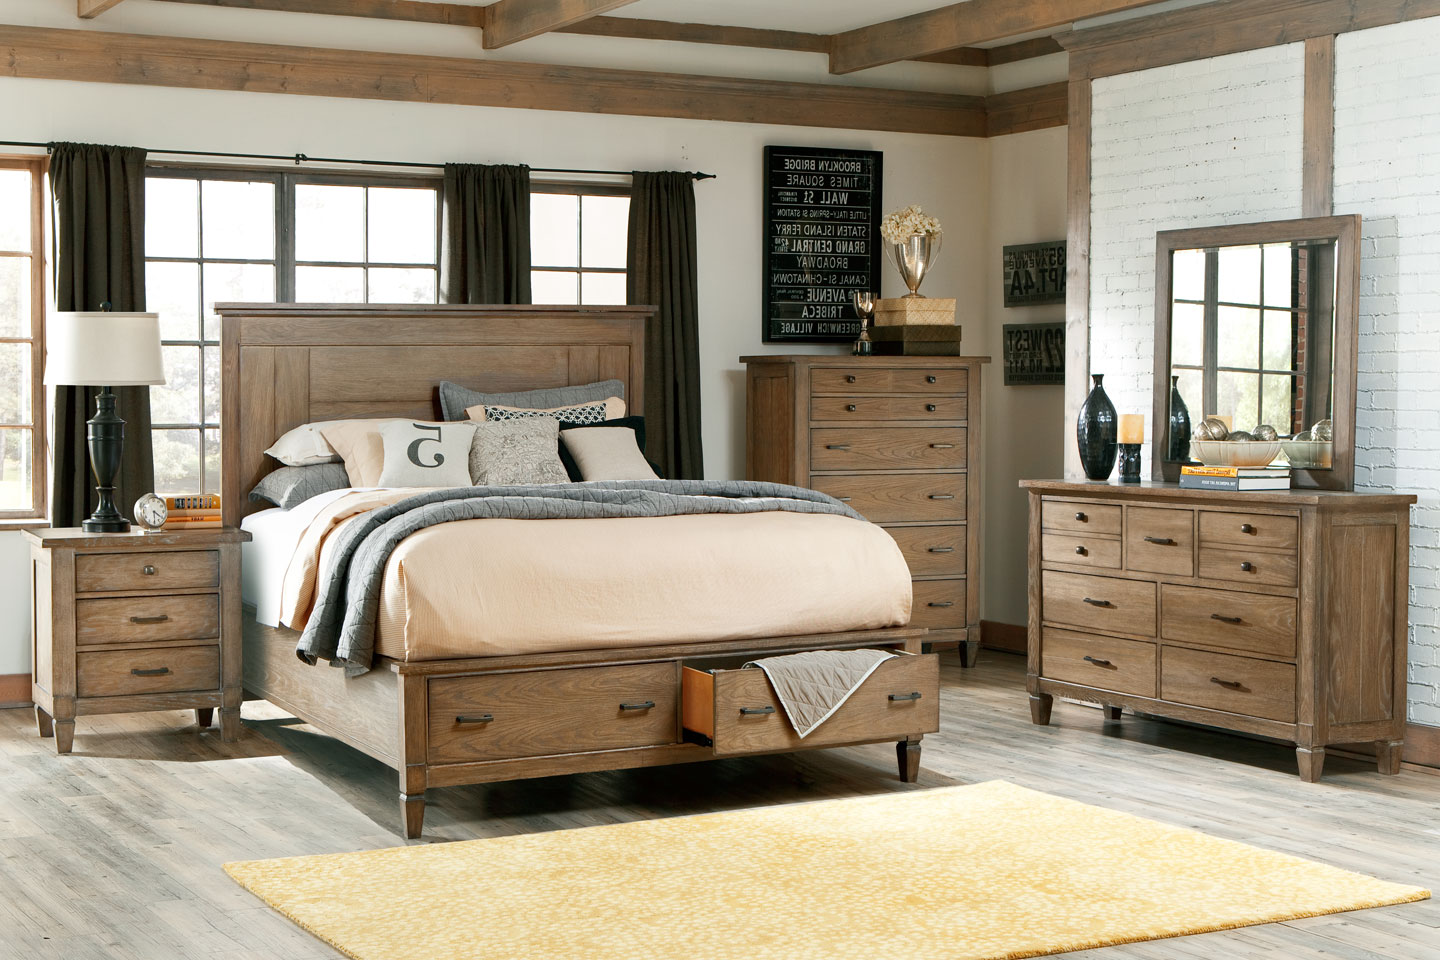 Gavin wood bedroom furniture collection wood bedroom for Furniture bedroom sets